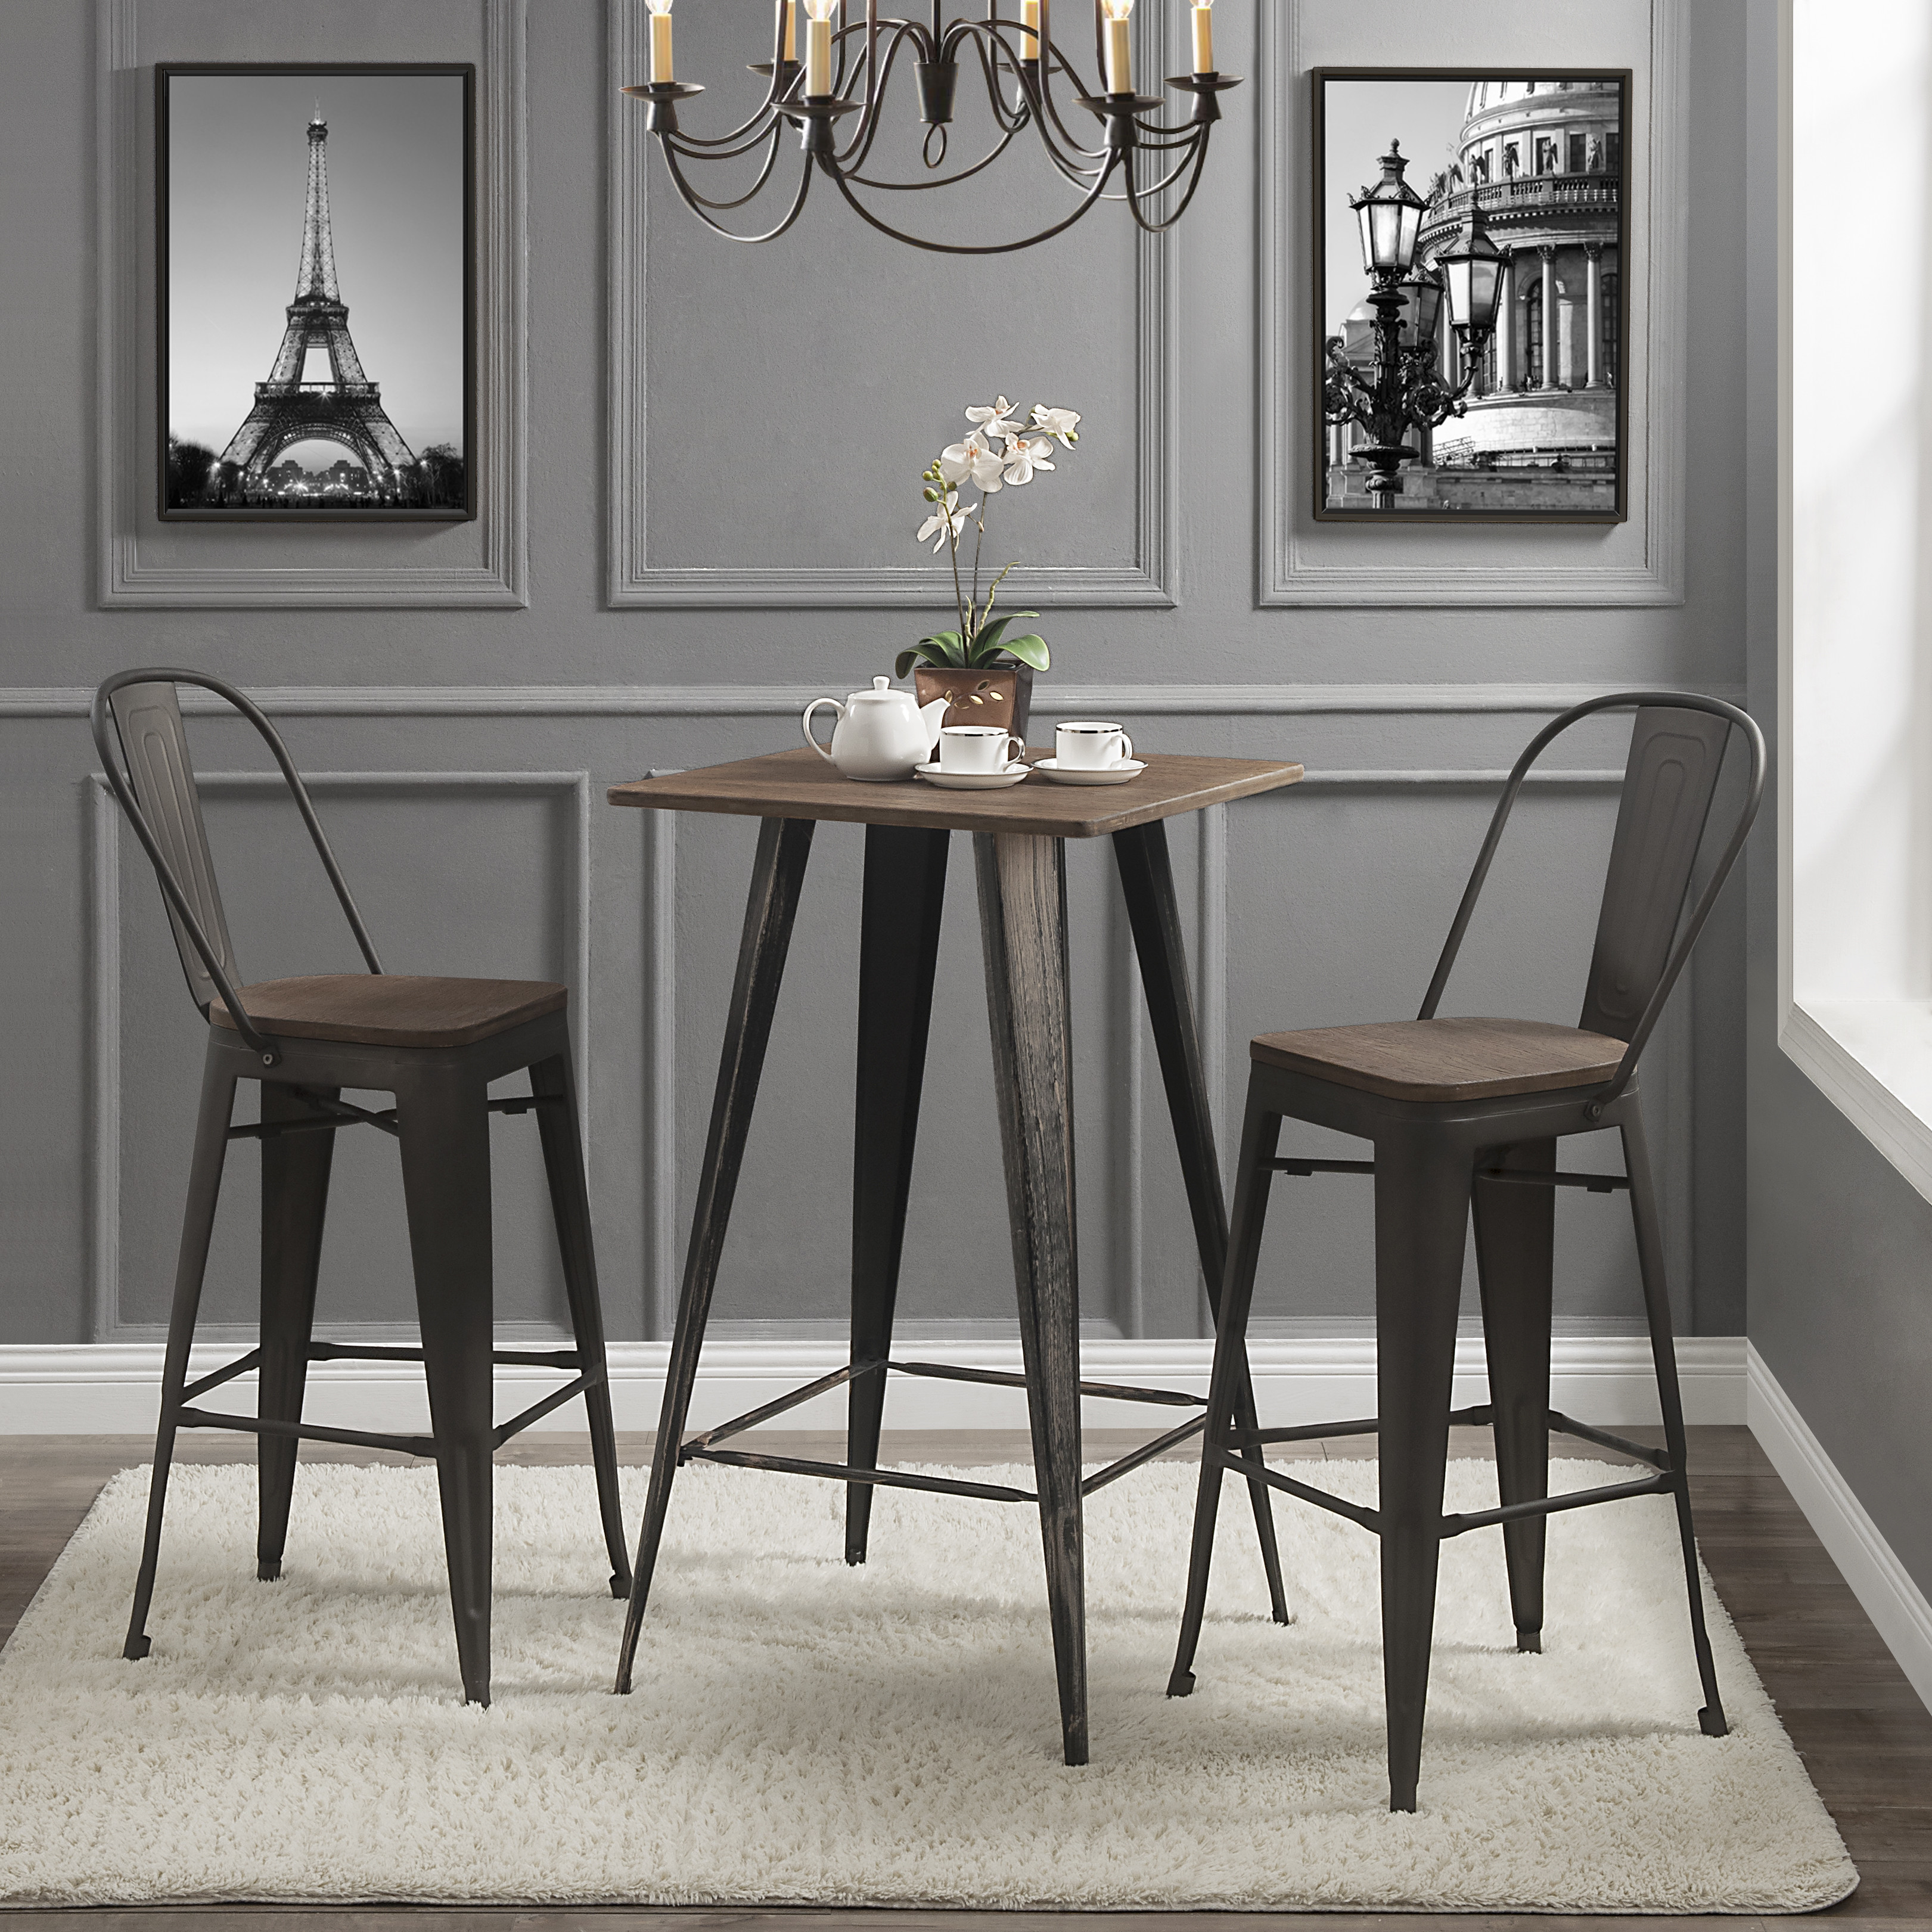 Small 3 Piece Dining Set, Industrial Wooden Bar Table And Chairs Dining Set, Kitchen Counter Height Dining Table Set With 2 Bar Stools, Square Pub Dining Set For Dining Room Living Room,